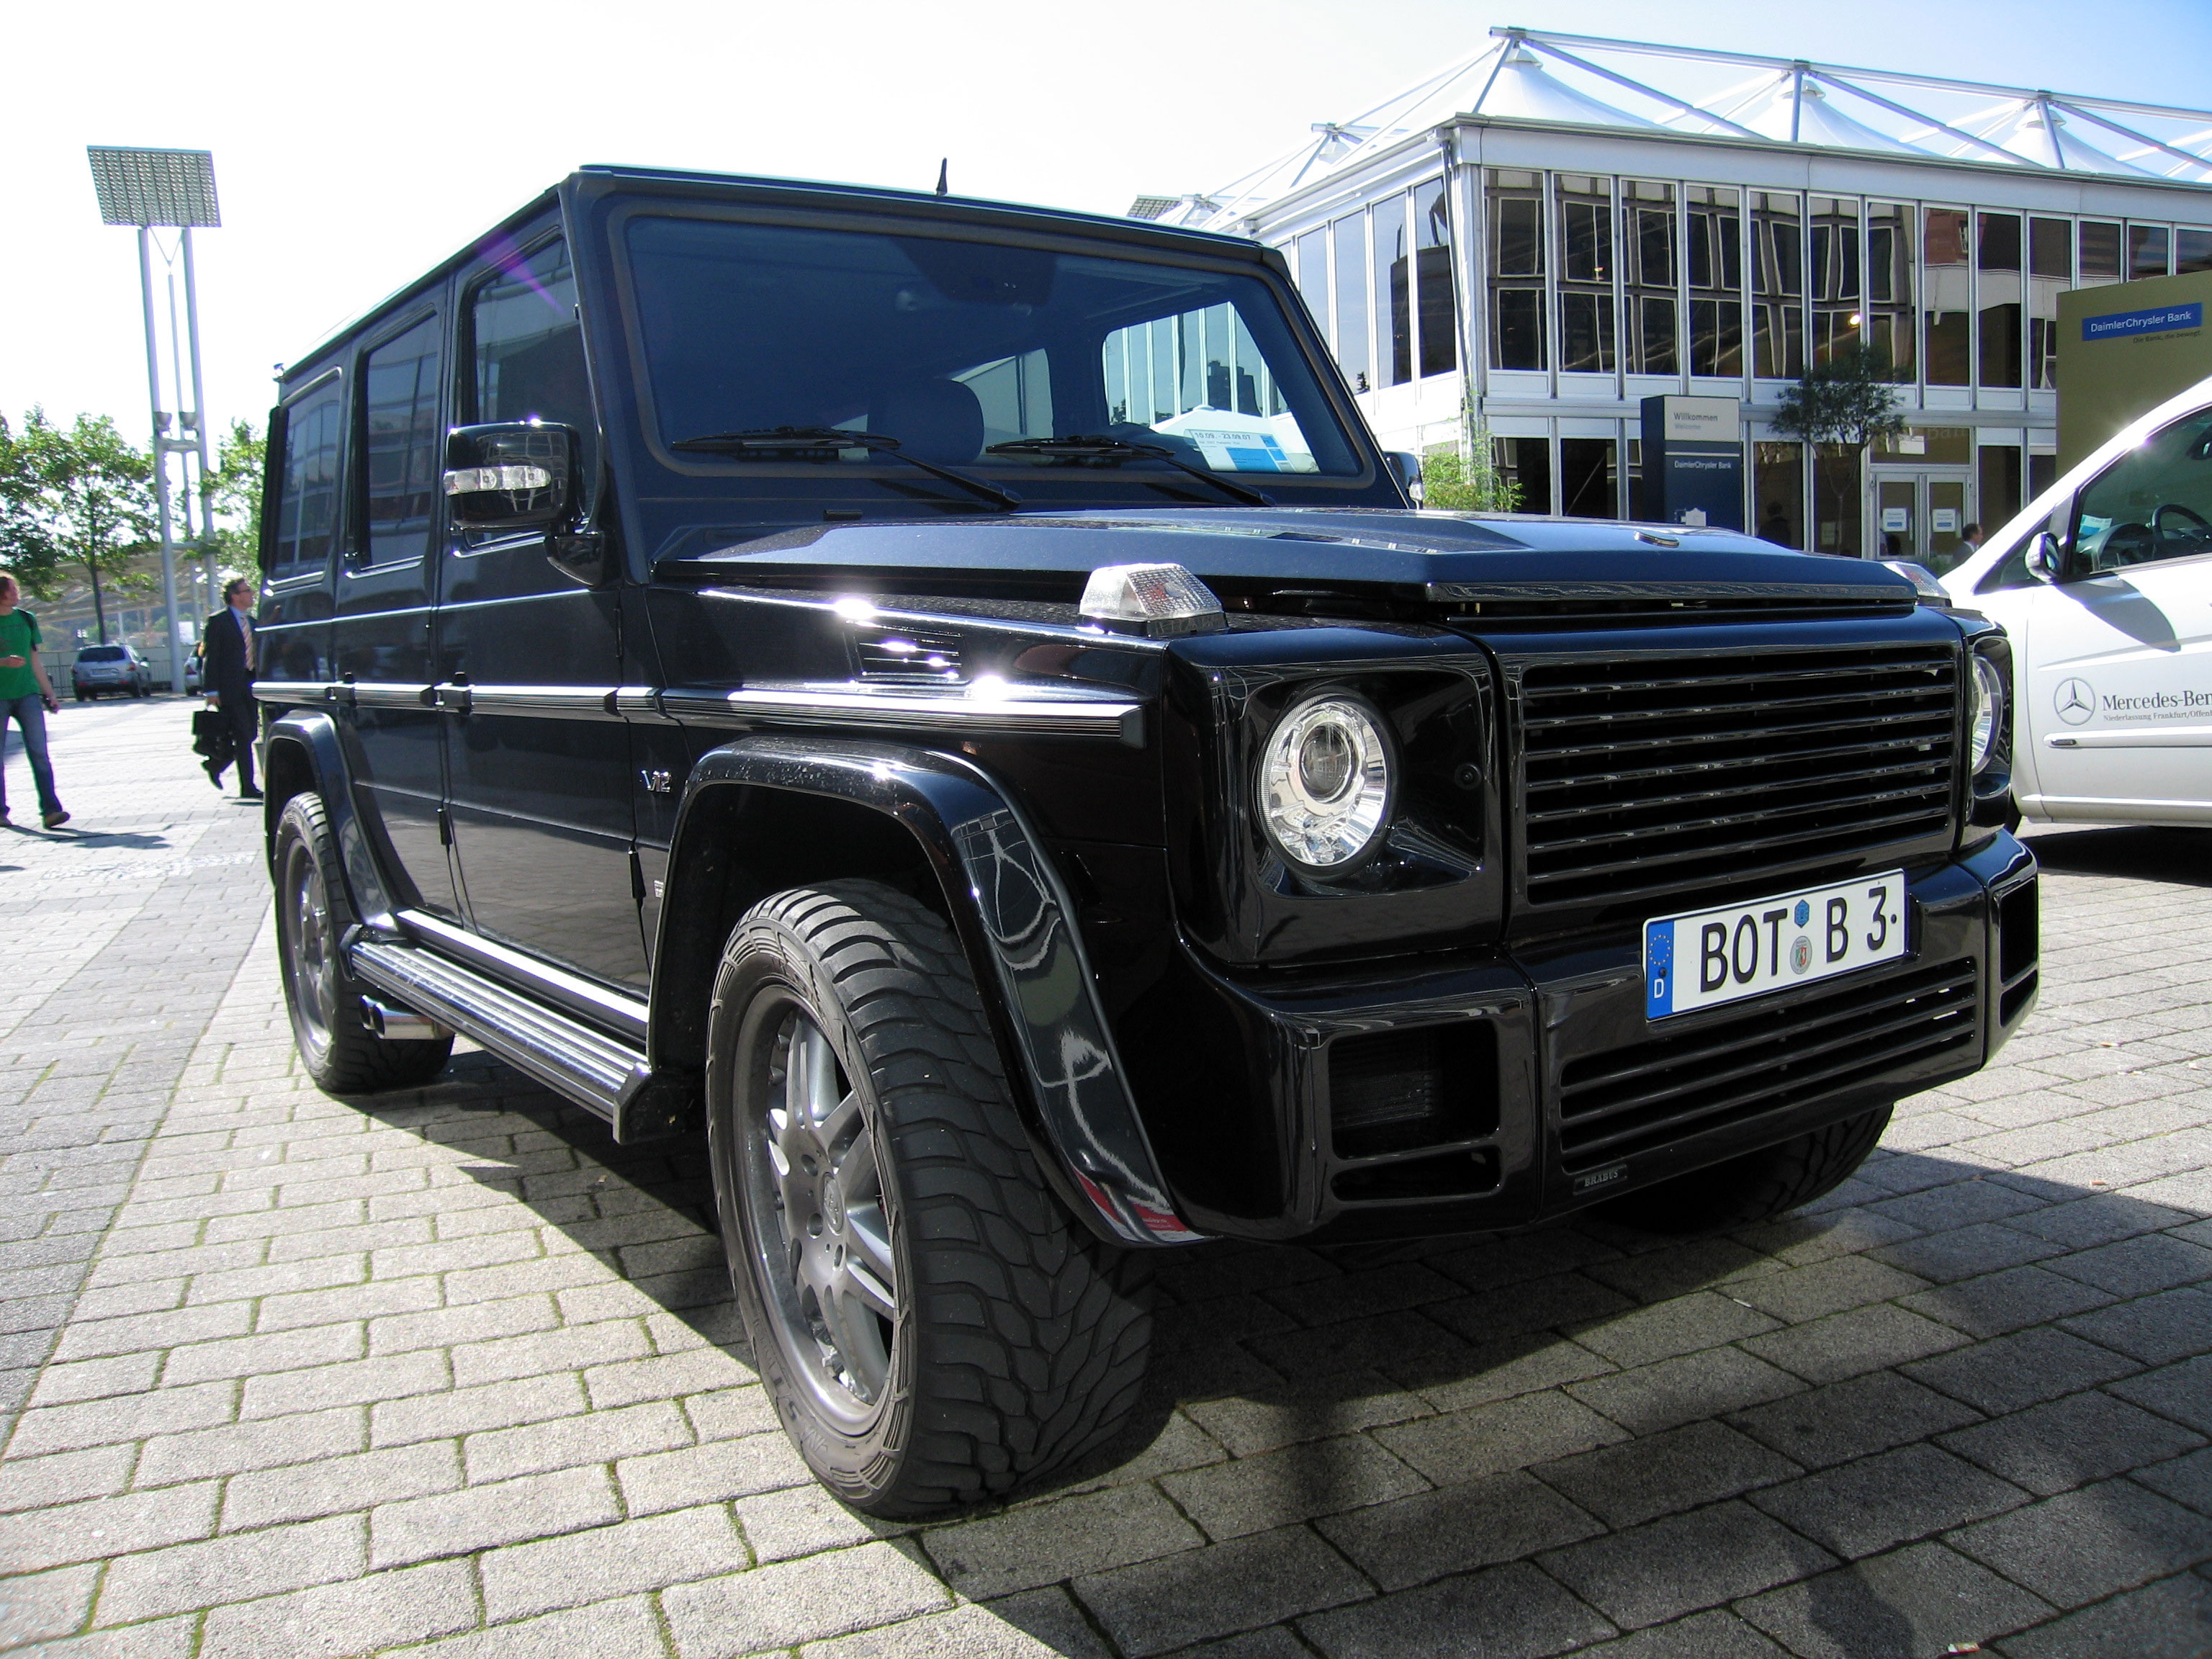 Mercedes-Benz G-Class - Wikipedia, the free encyclopedia